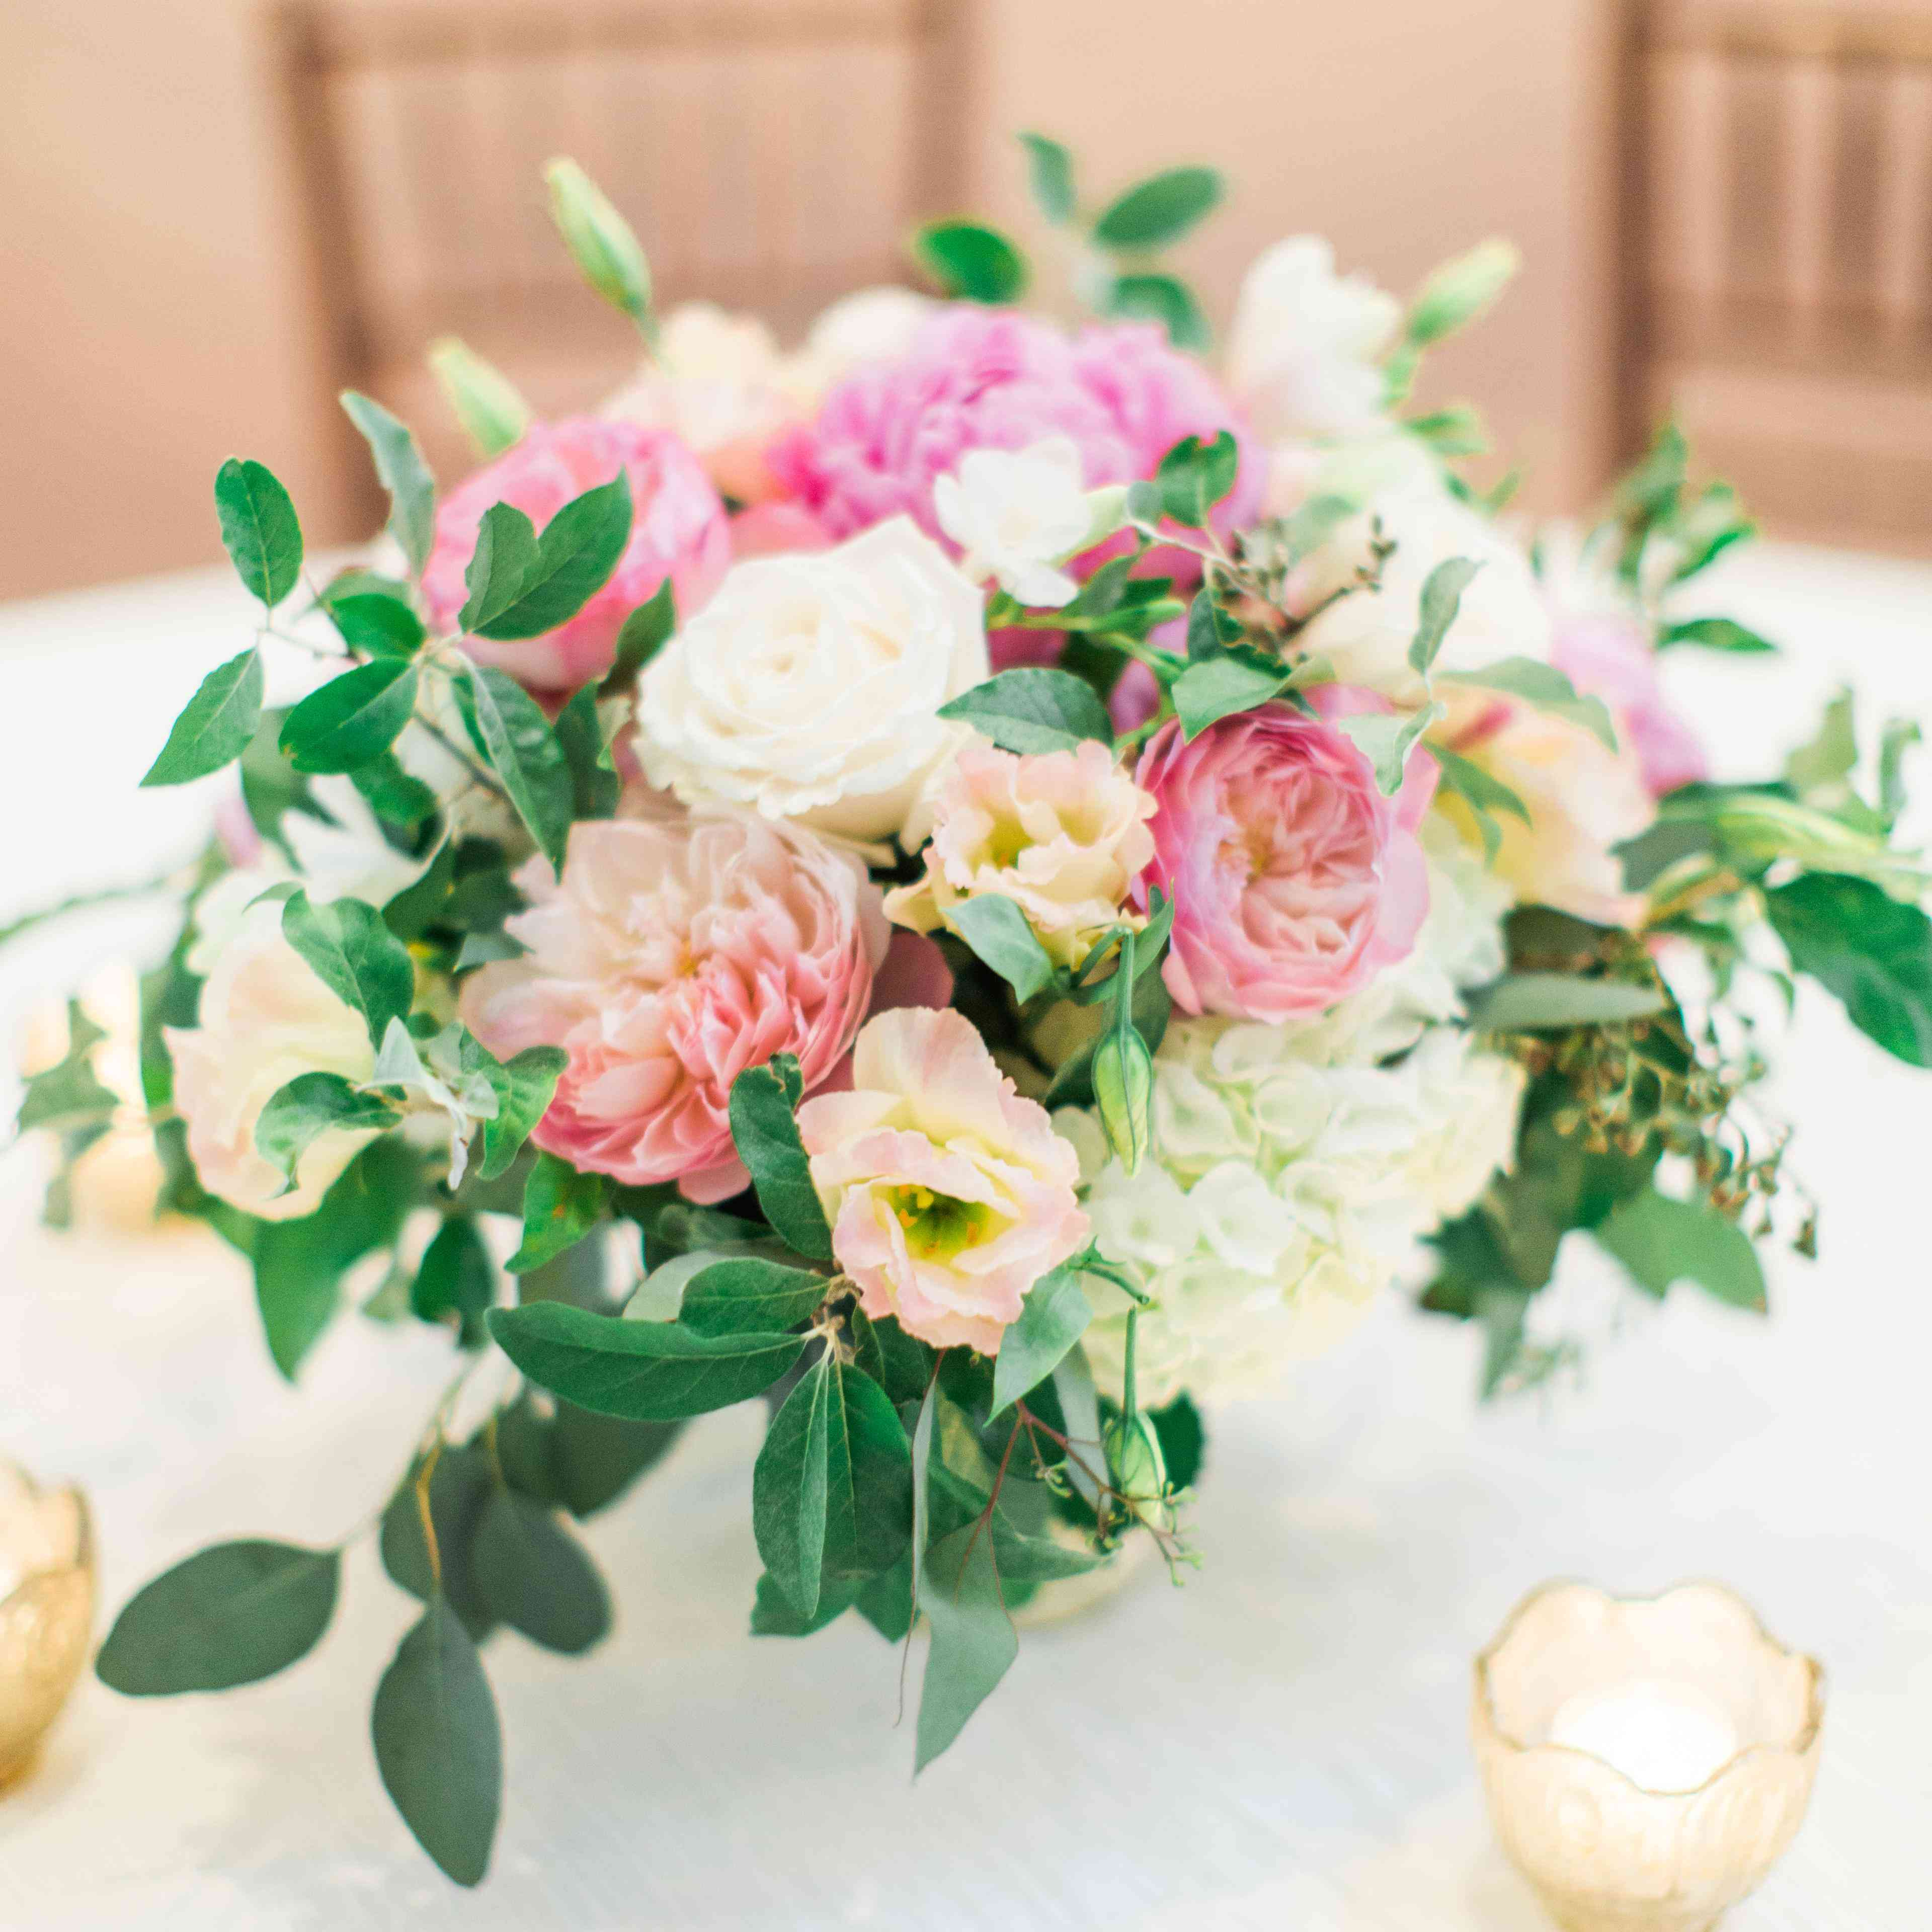 Wedding Flowers In May: This New Wedding Flower Service Will Save You So Much